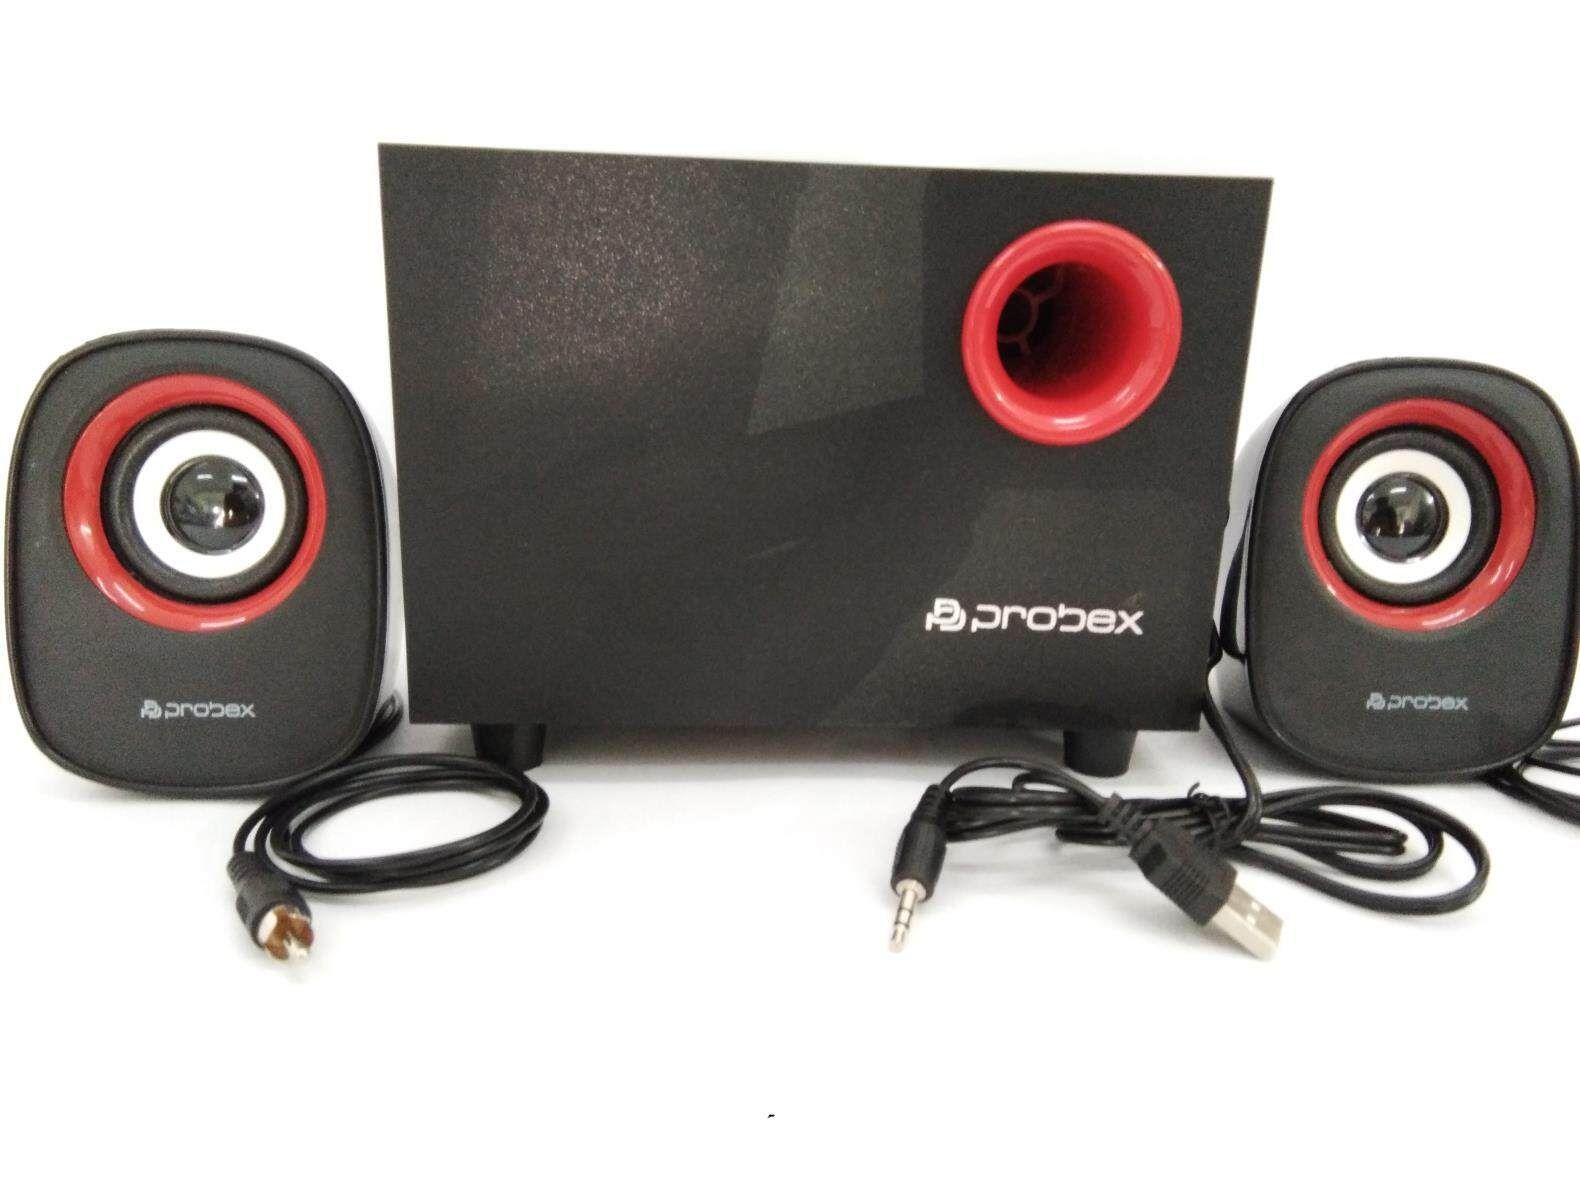 Probex USB 2.1CHANNEL WOOFER SPEAKER - S9 Malaysia